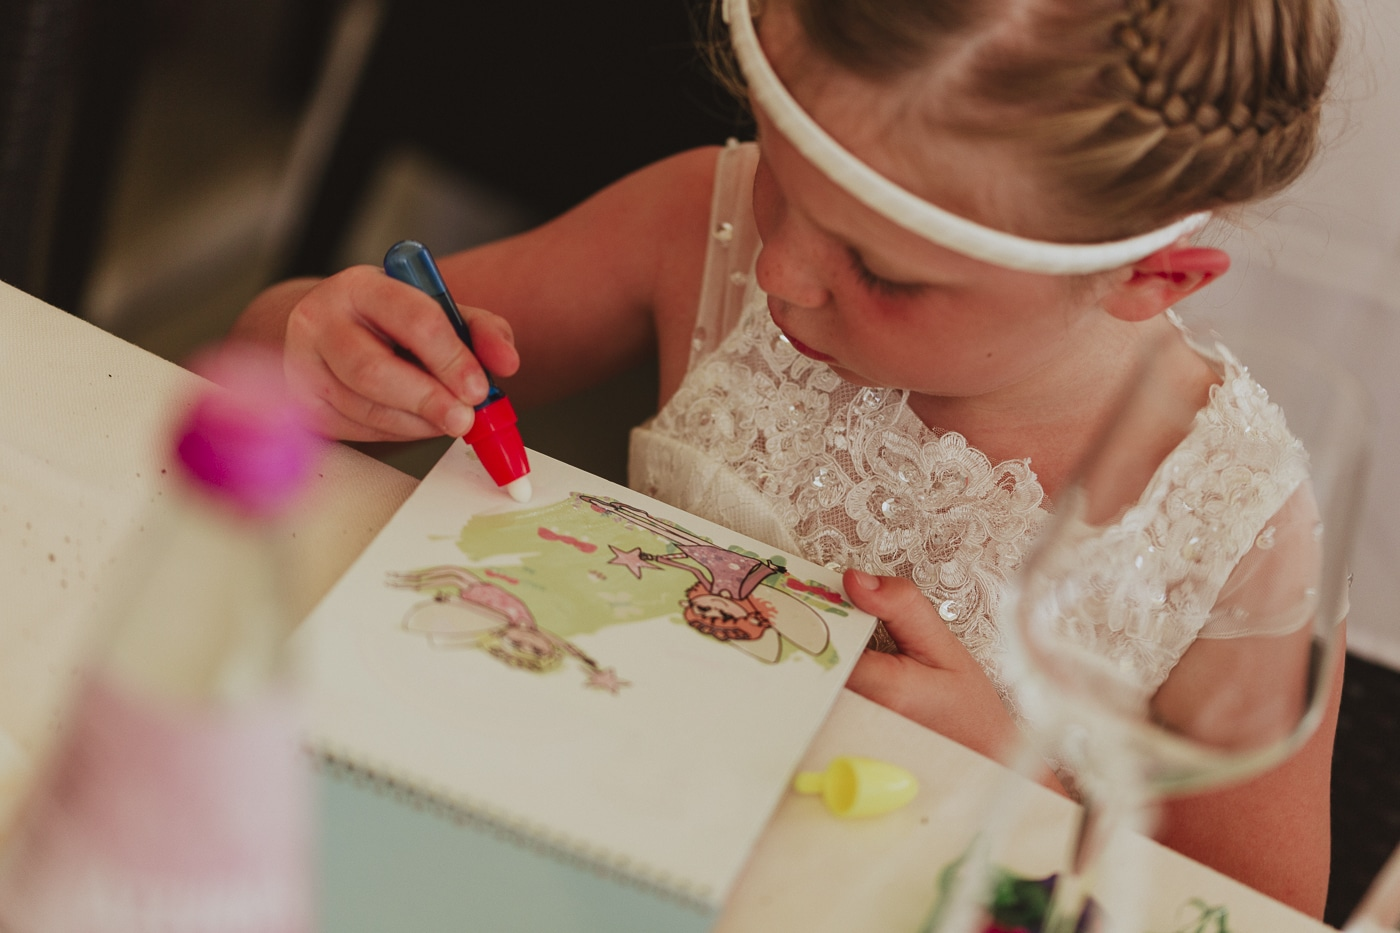 Young child colouring dressed in white bridesmaid dress and white headband by Joshua Wyborn